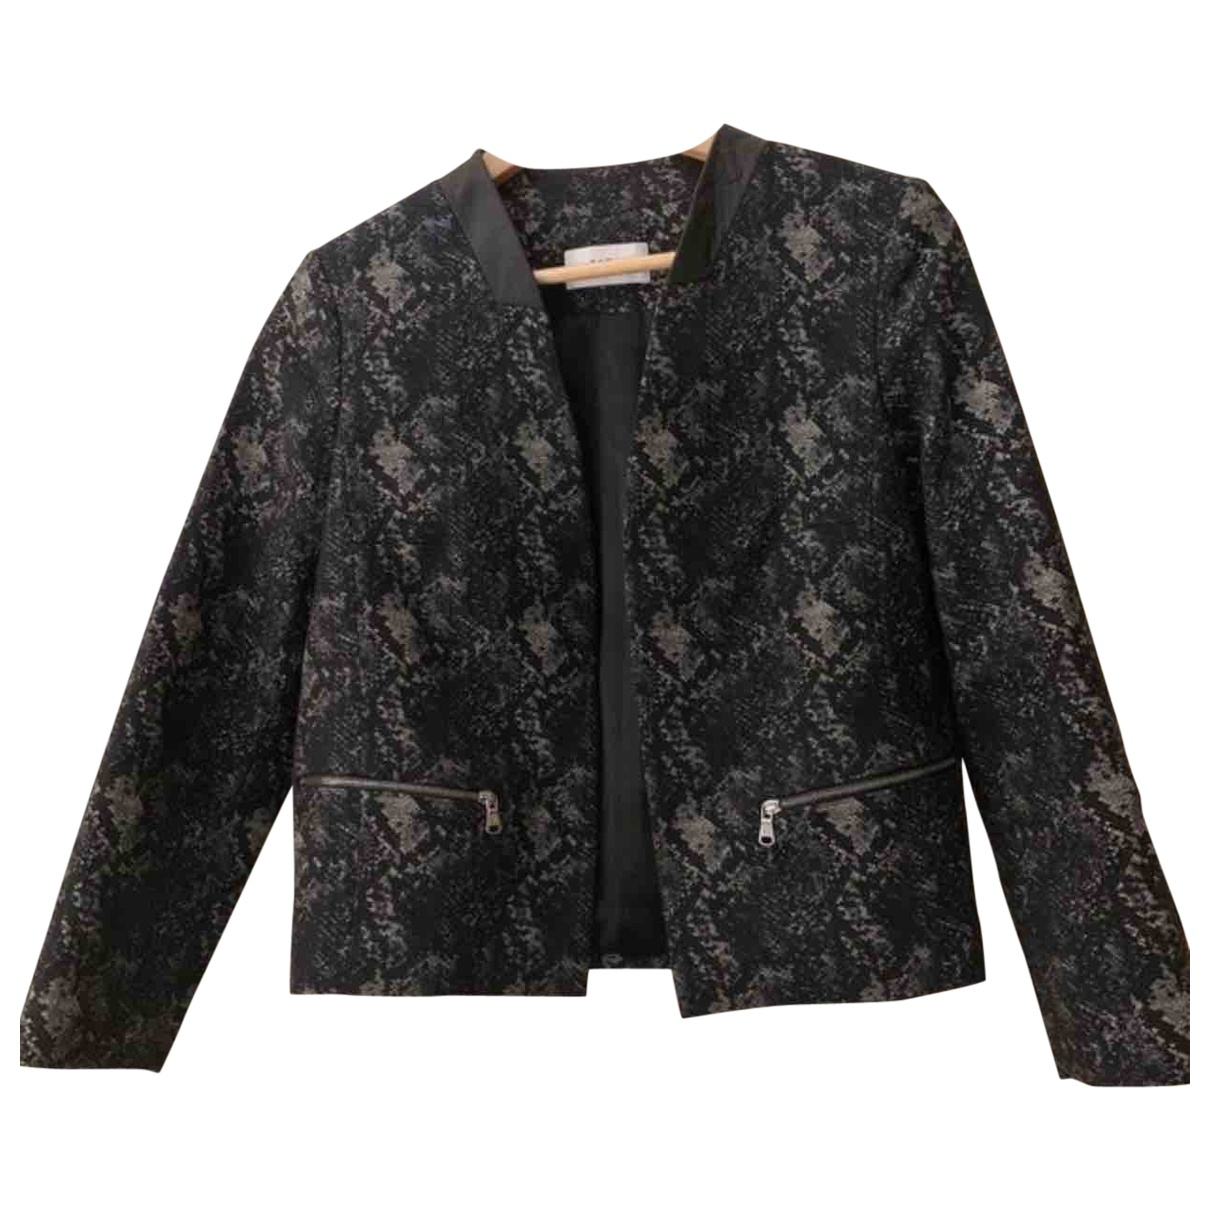 Zapa \N Black jacket for Women 38 FR